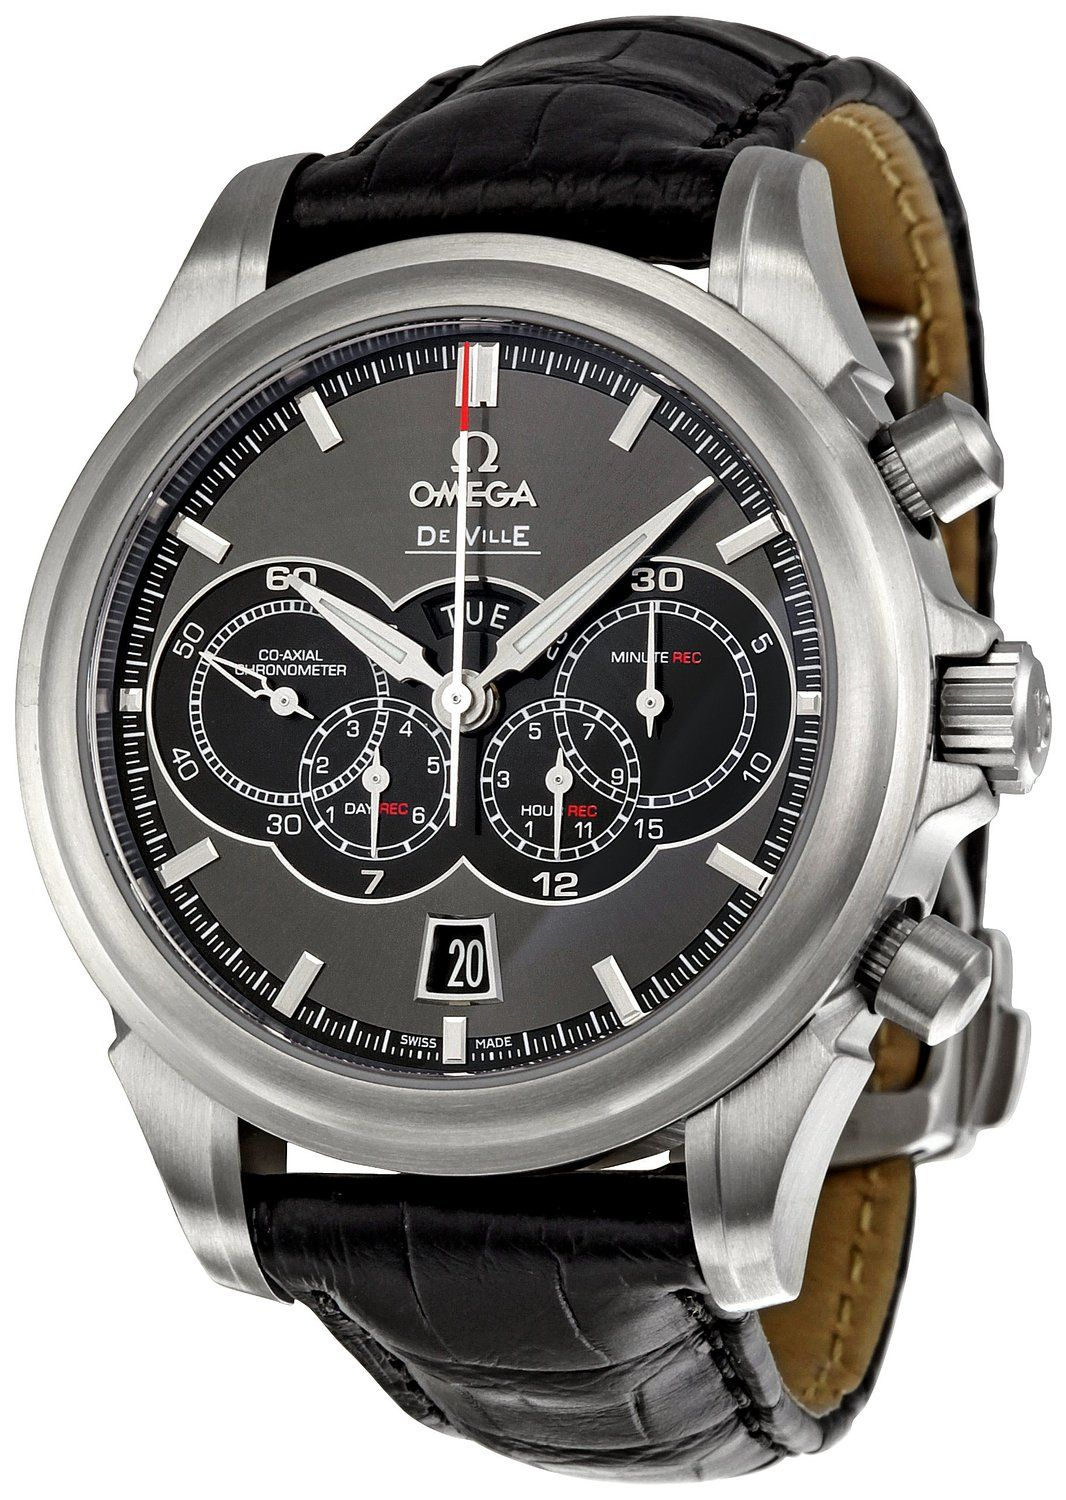 Omega Men S Deville Chronograph Watch Watches For Men Stylish Watches Luxury Watches For Men